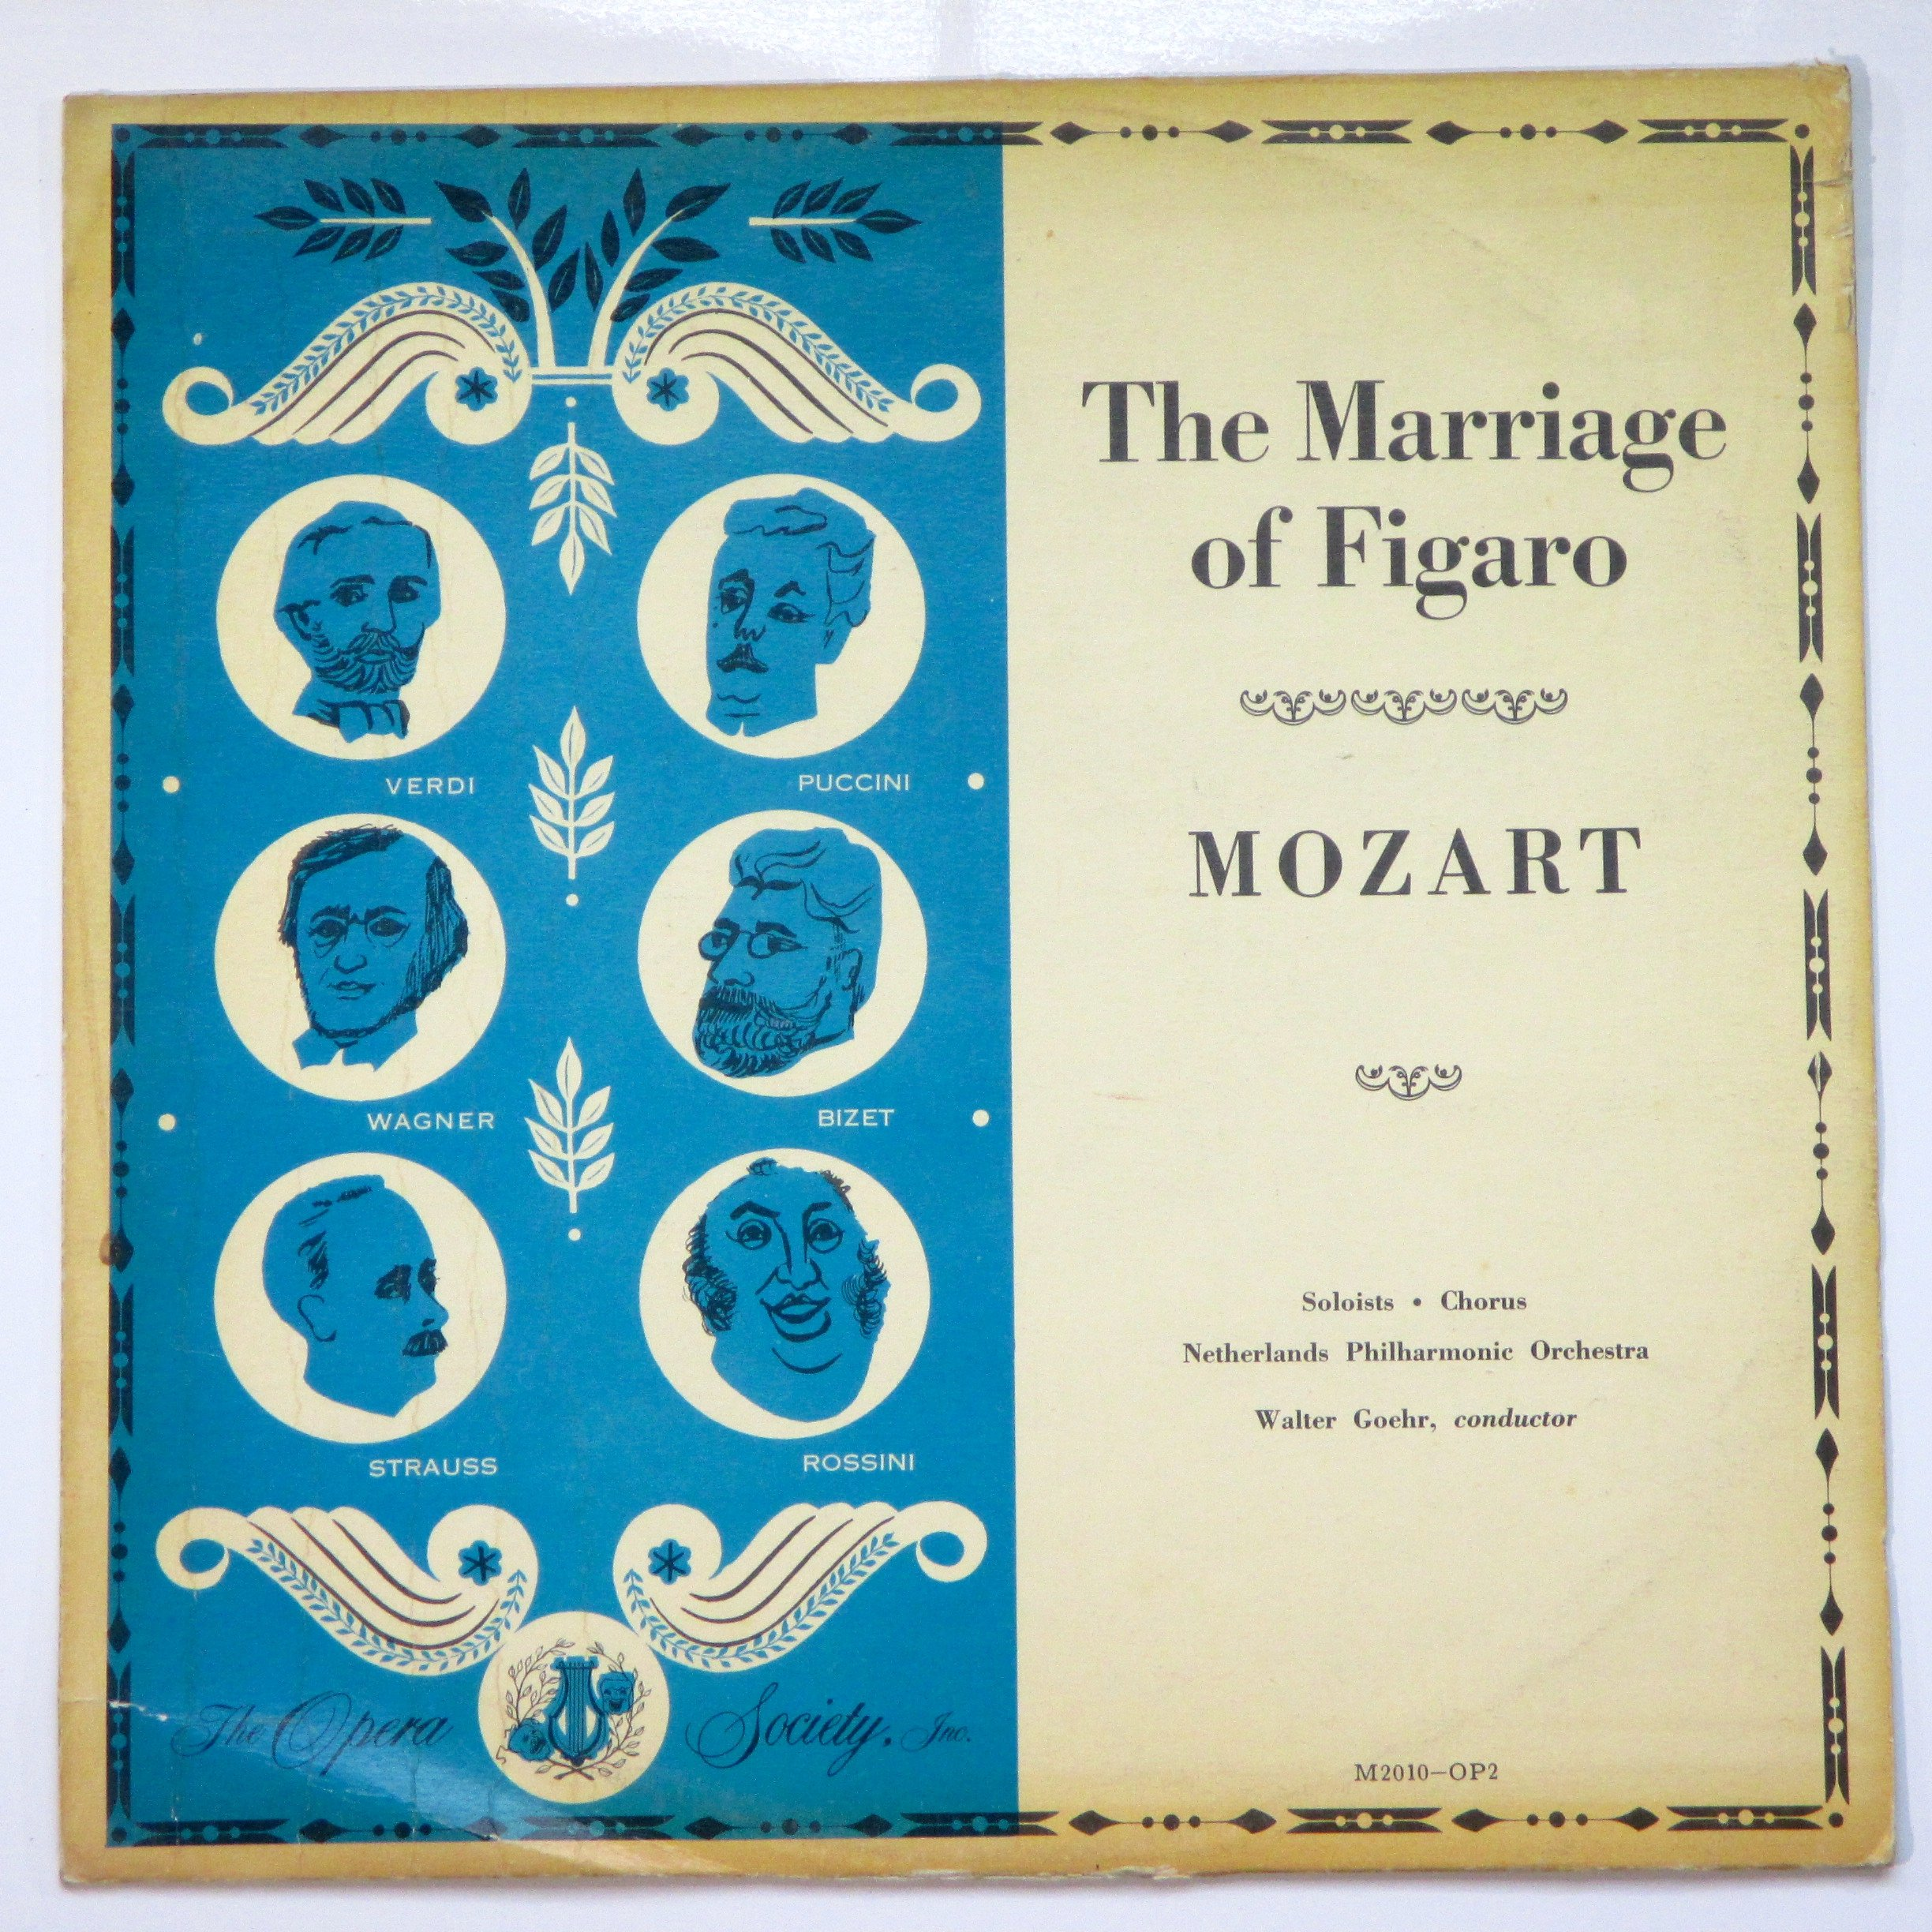 Mozart: The Marriage of Figaro / Soloists, Chorus, Netherlands Philharmonic Orchestra, Walter Goehr, Conductor